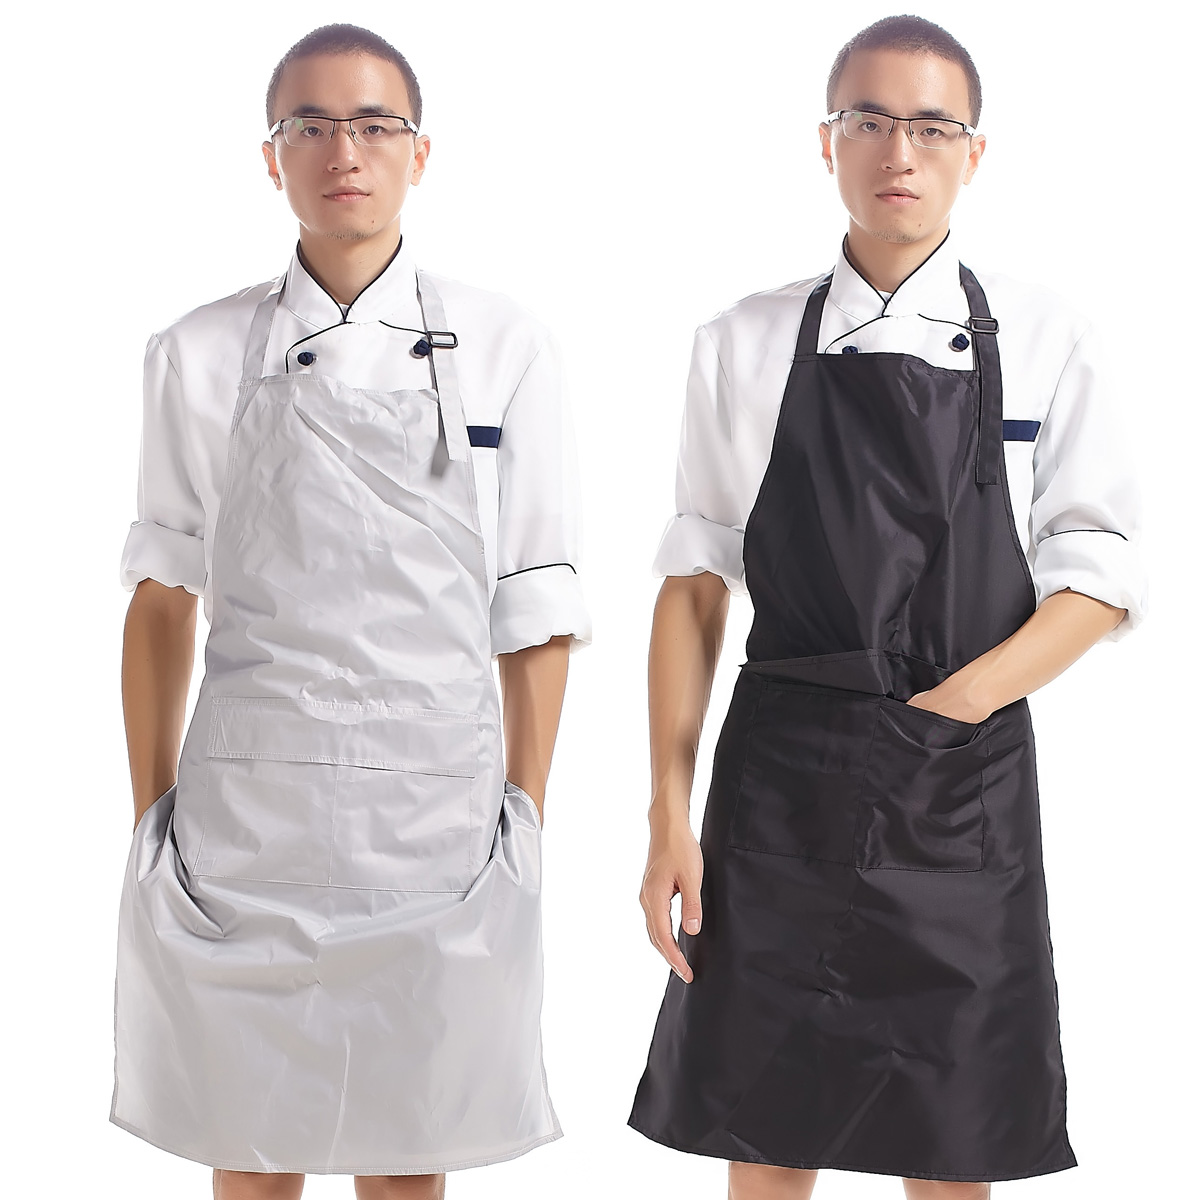 Restaurant Kitchen Aprons compare prices on black restaurant apron- online shopping/buy low